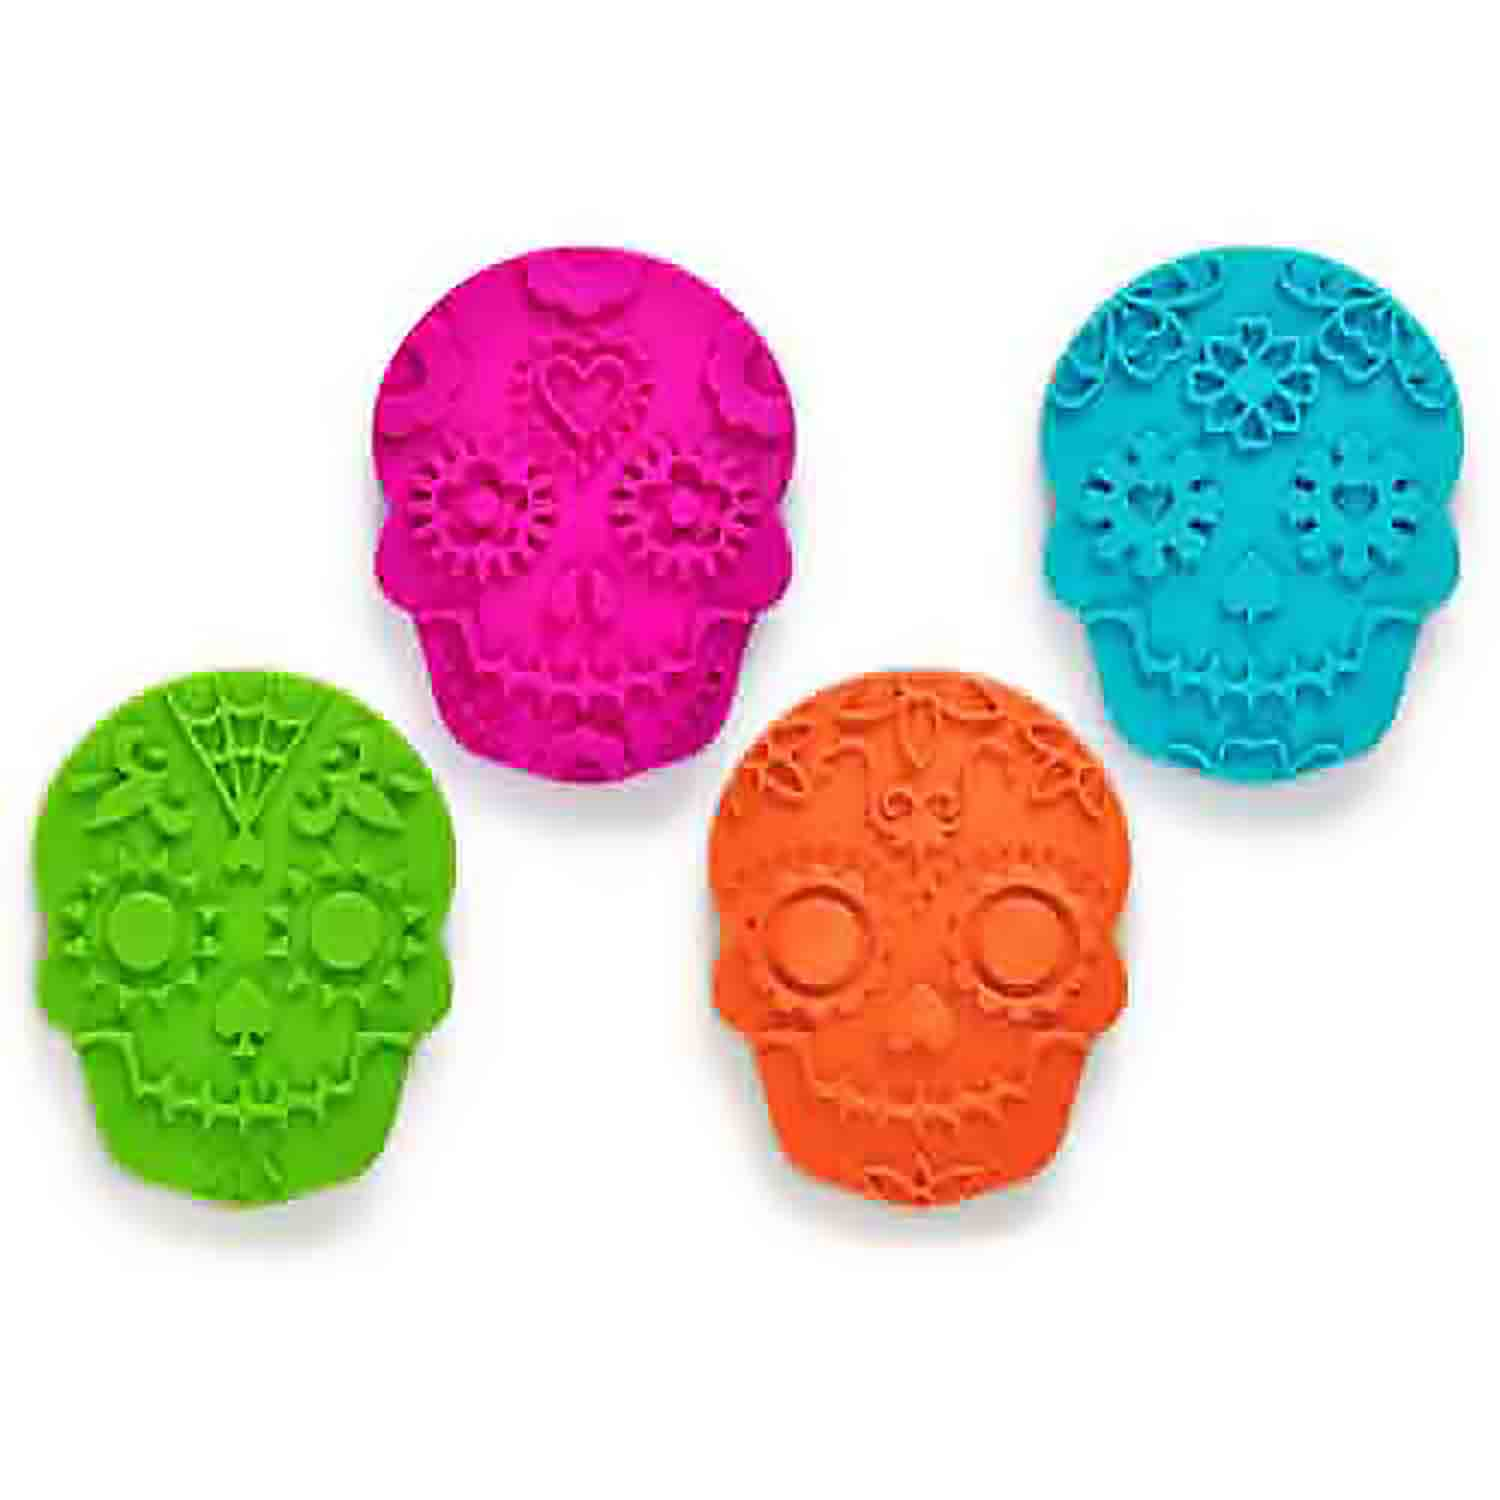 Skull Cookie Stamp/Cutter Set